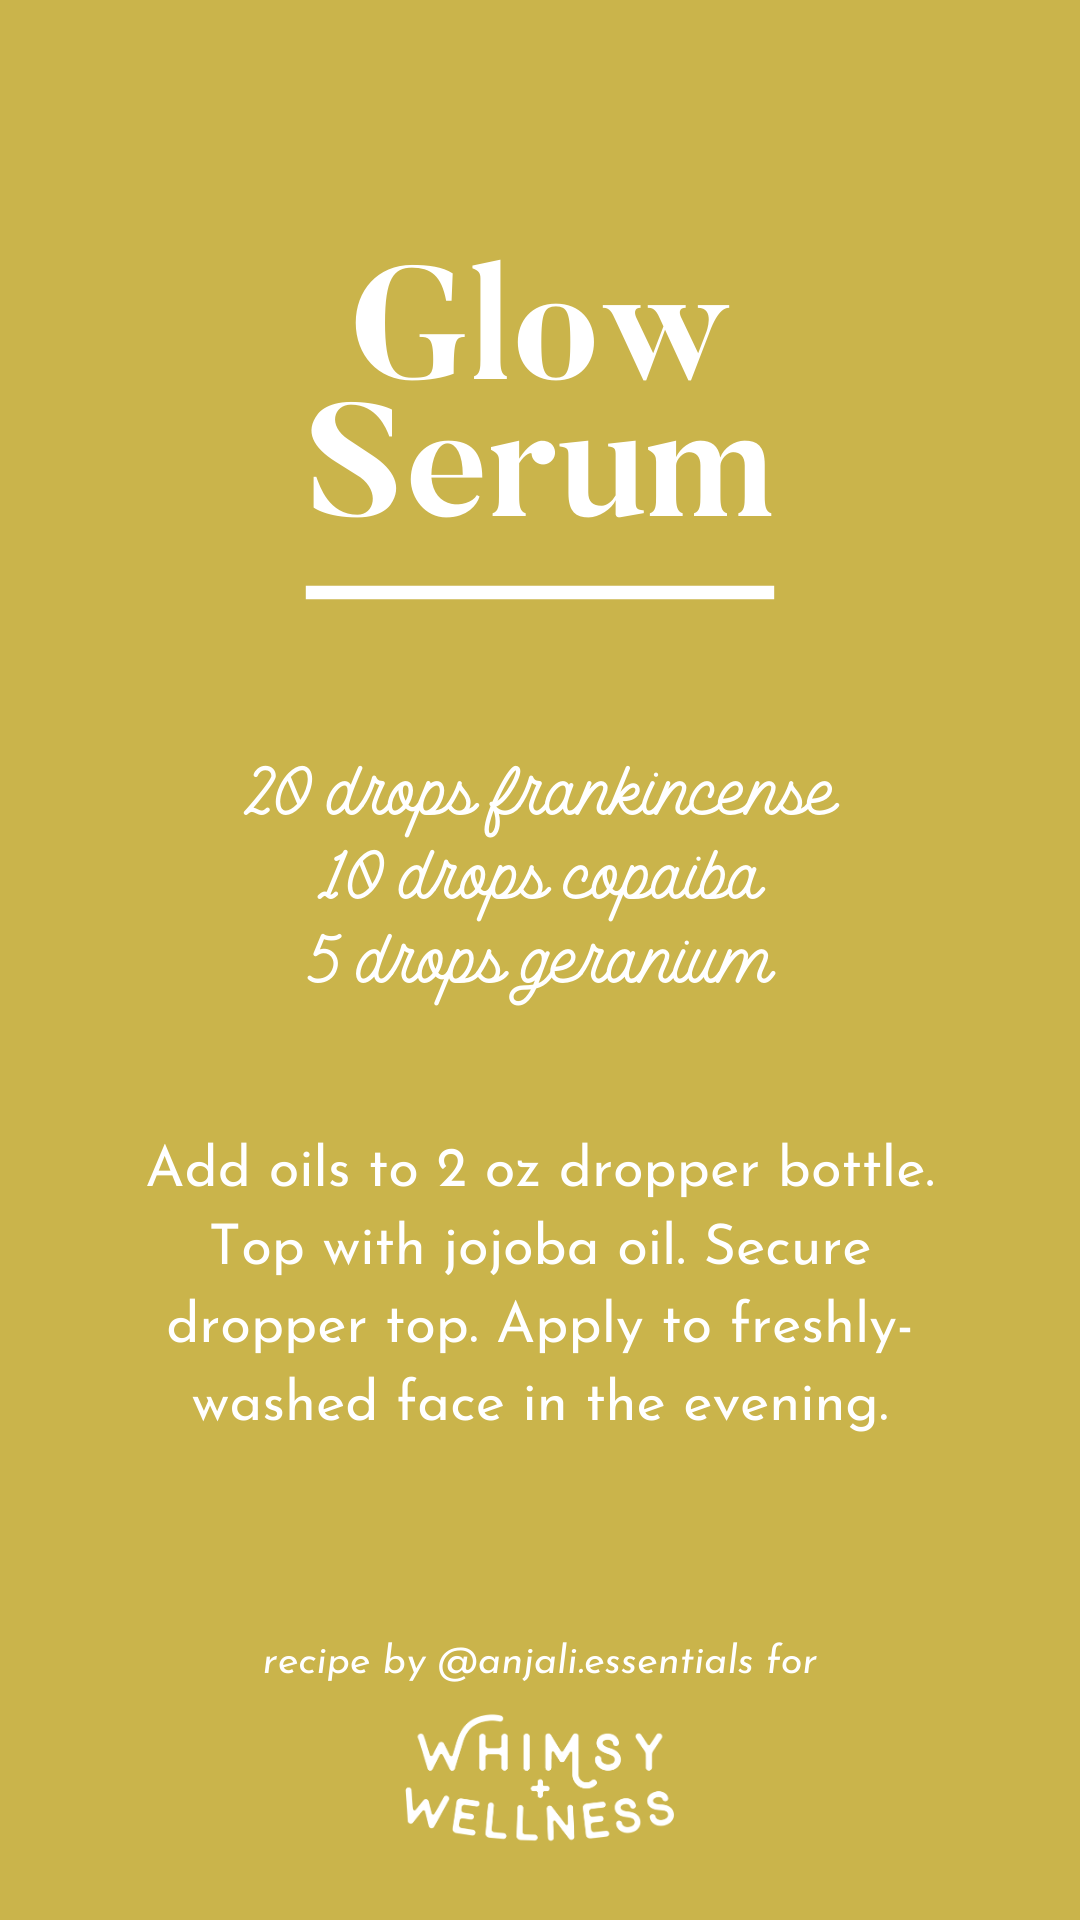 Anjali's Glow Serum recipe, made with Young Living Essential Oils